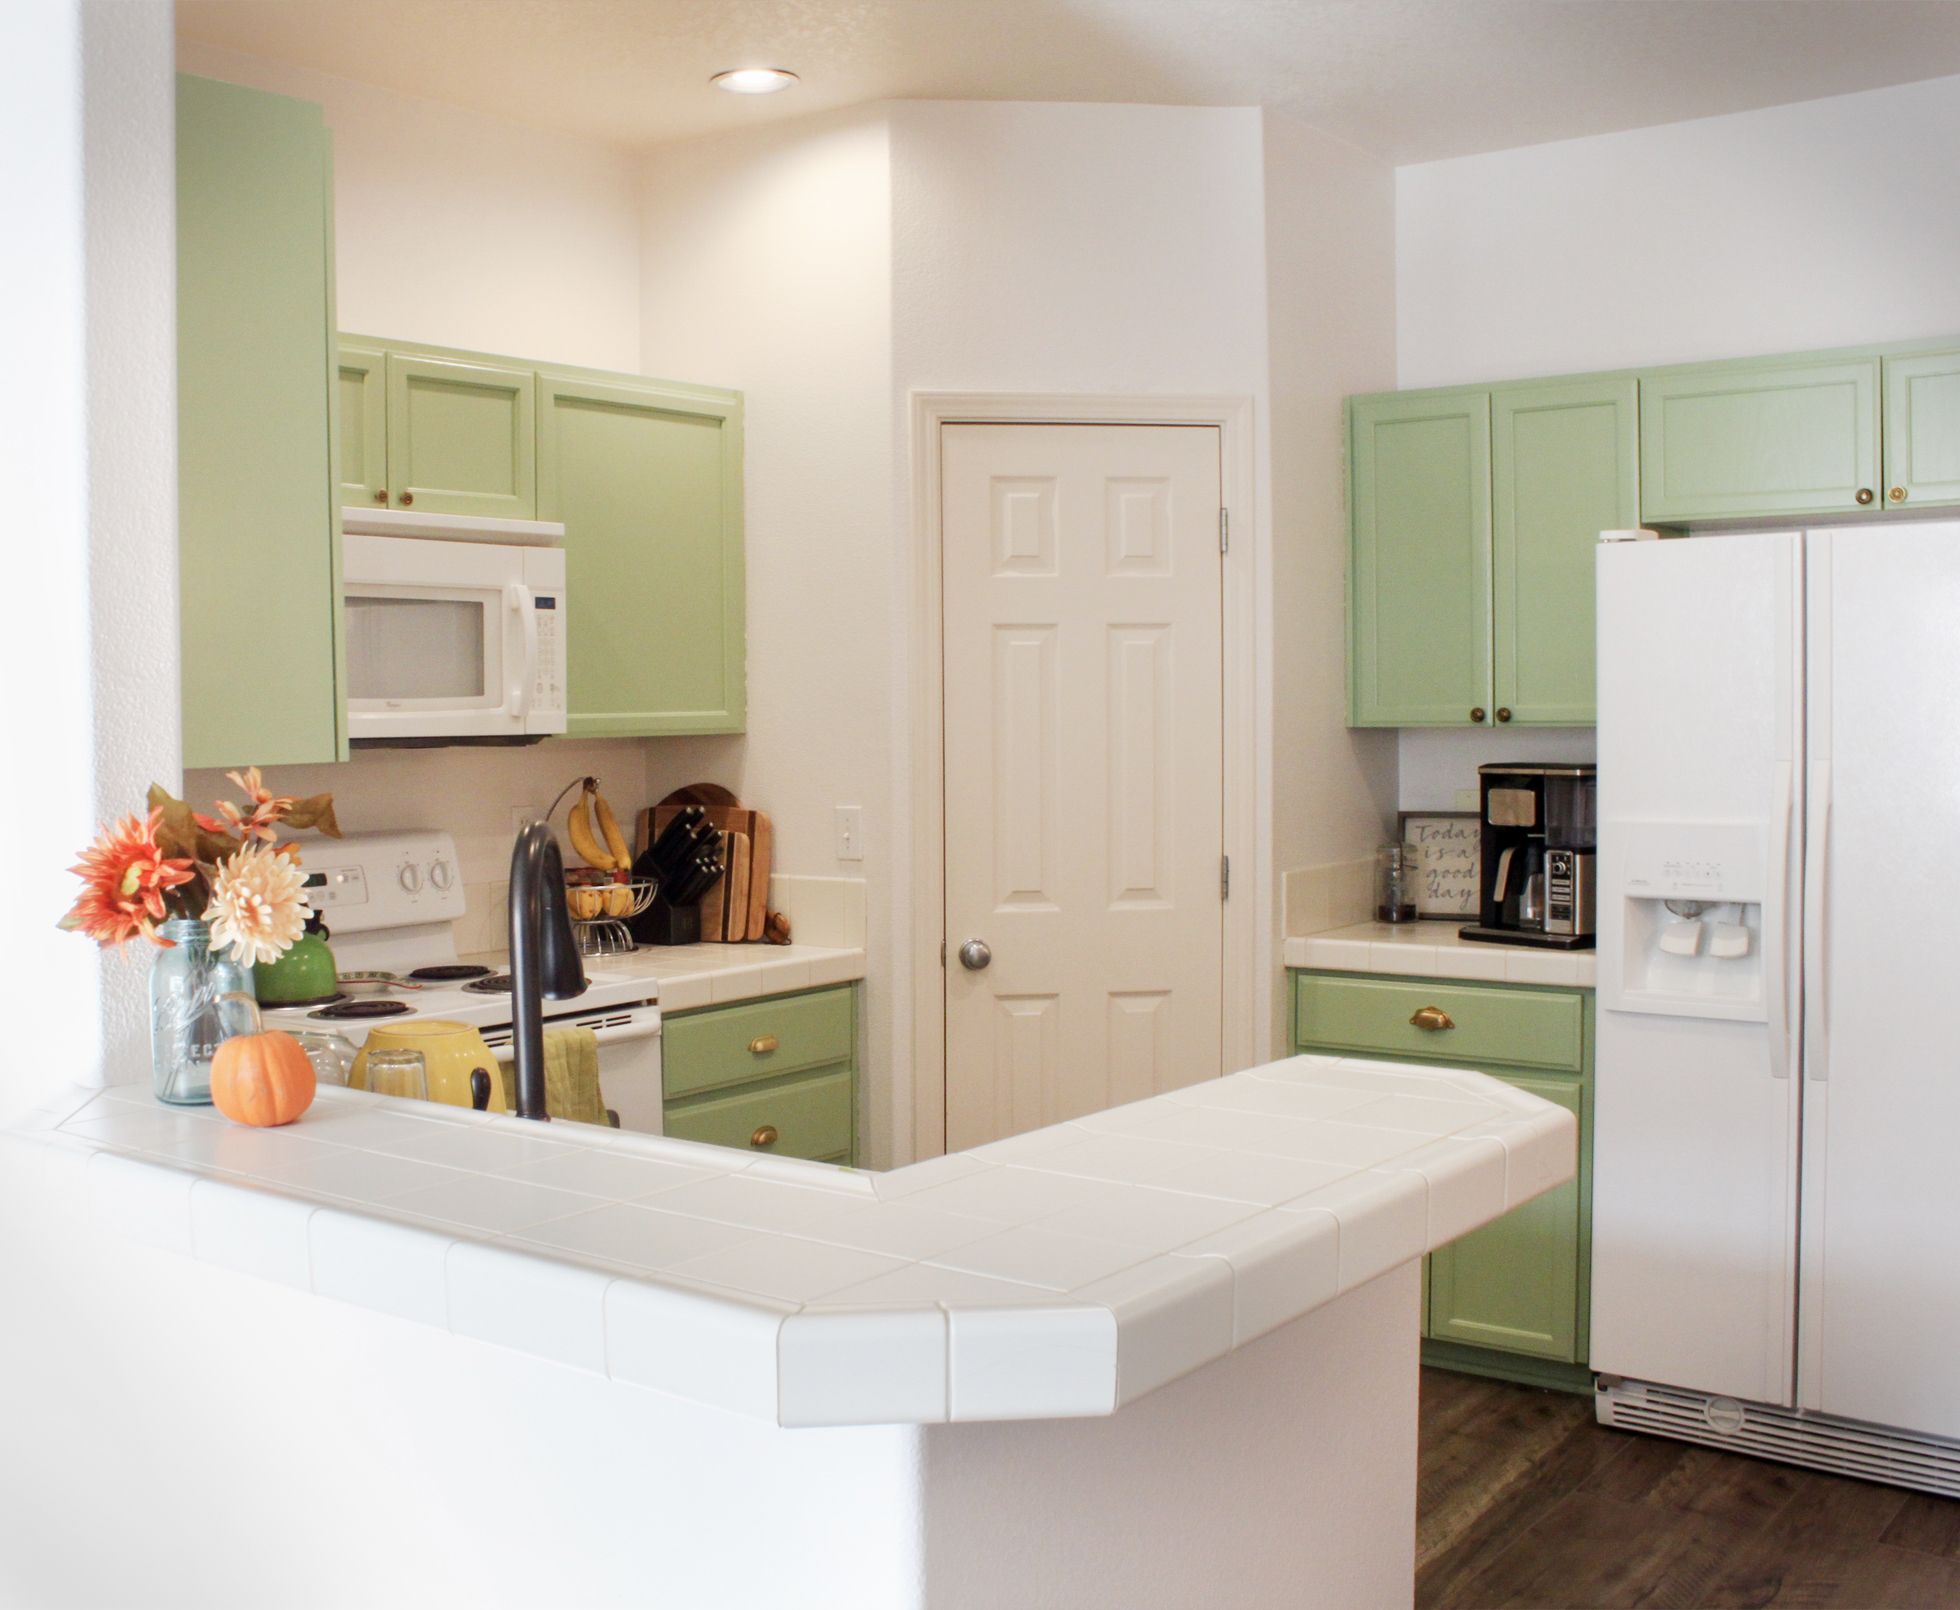 Kitchen cabinets painted in a light pistachio green